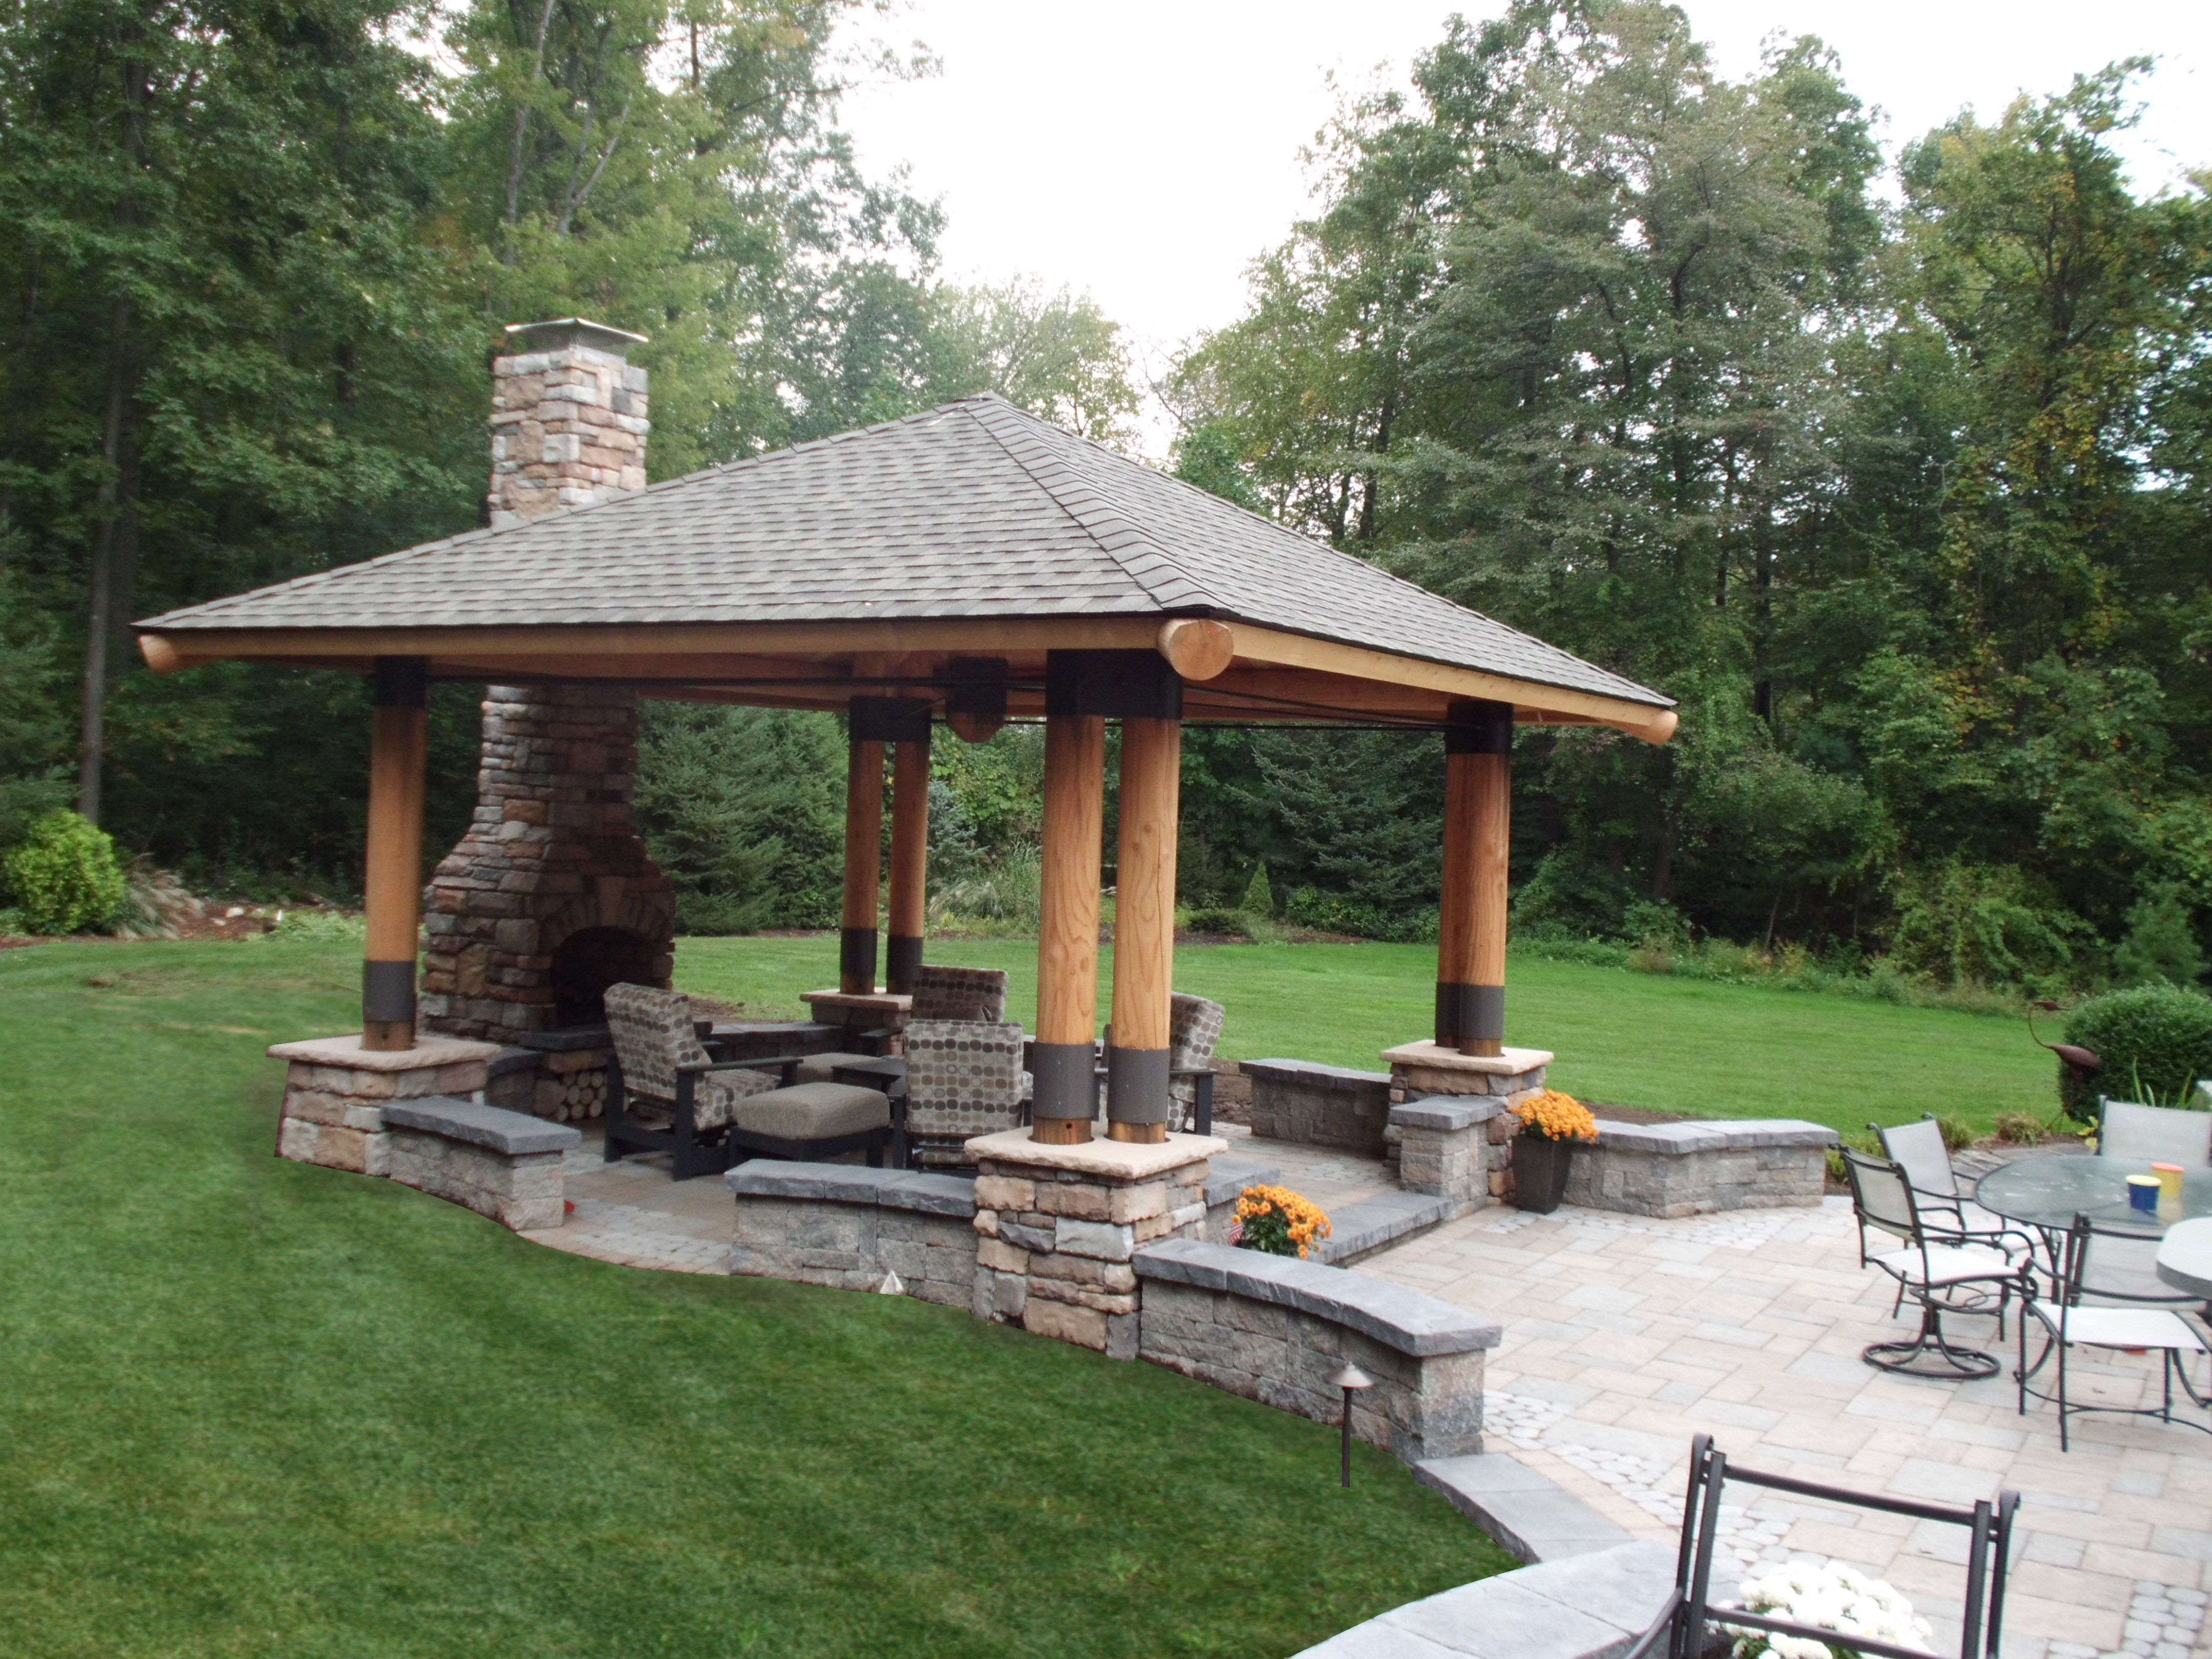 Pavilion Built Into Columns On Paver Patio With Sitting Walls And